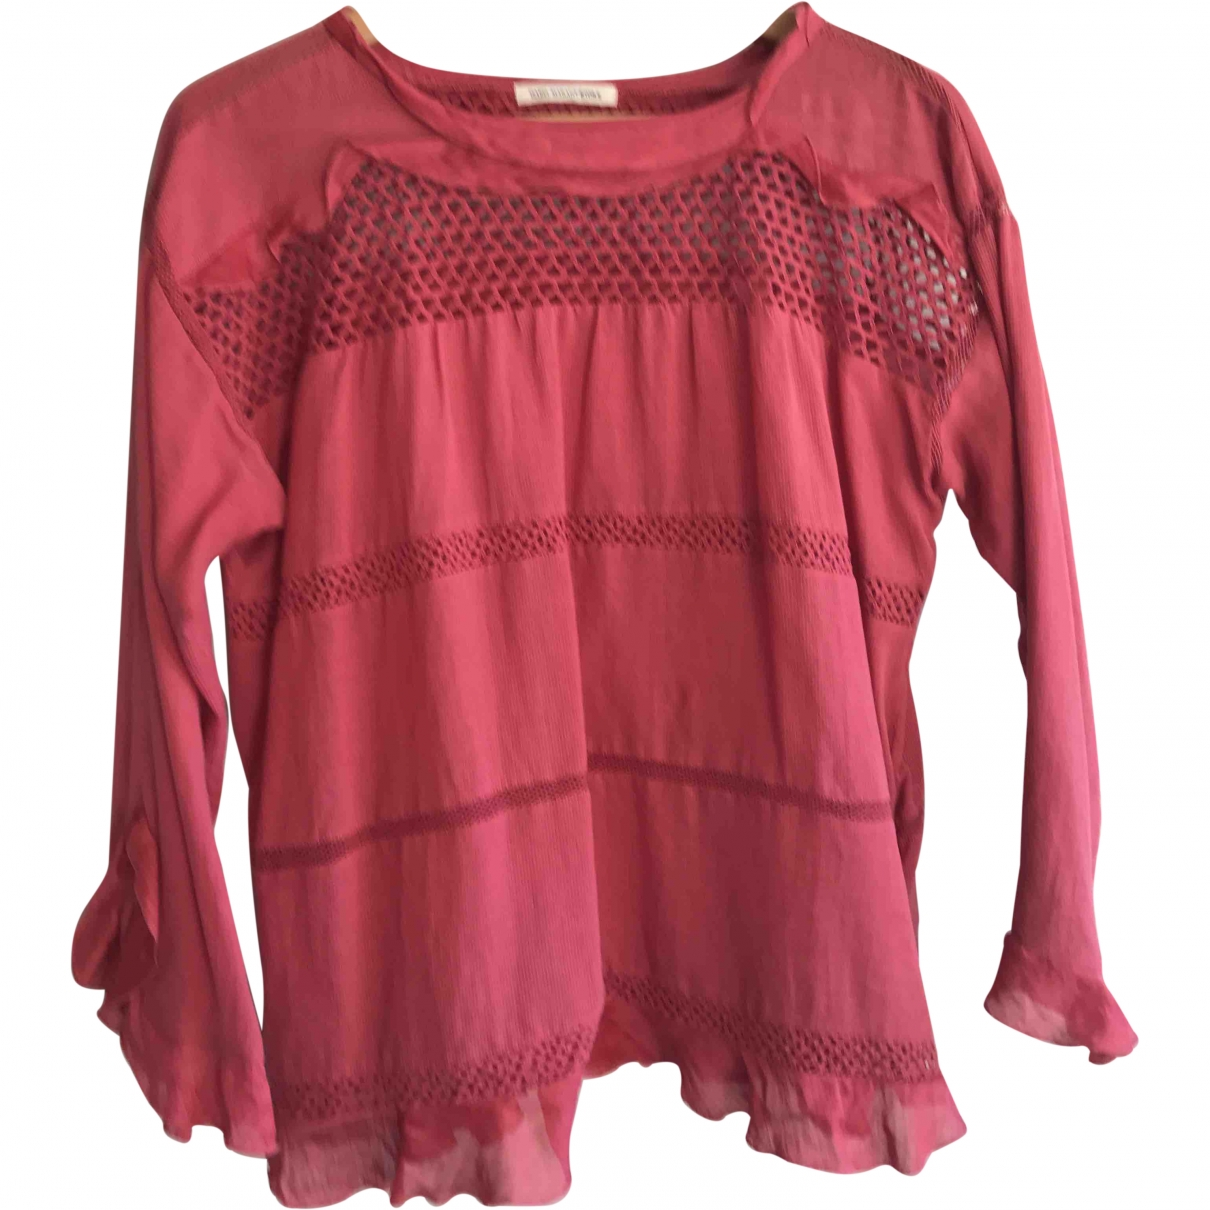 Isabel Marant Etoile \N Pink Cotton  top for Women 34 FR